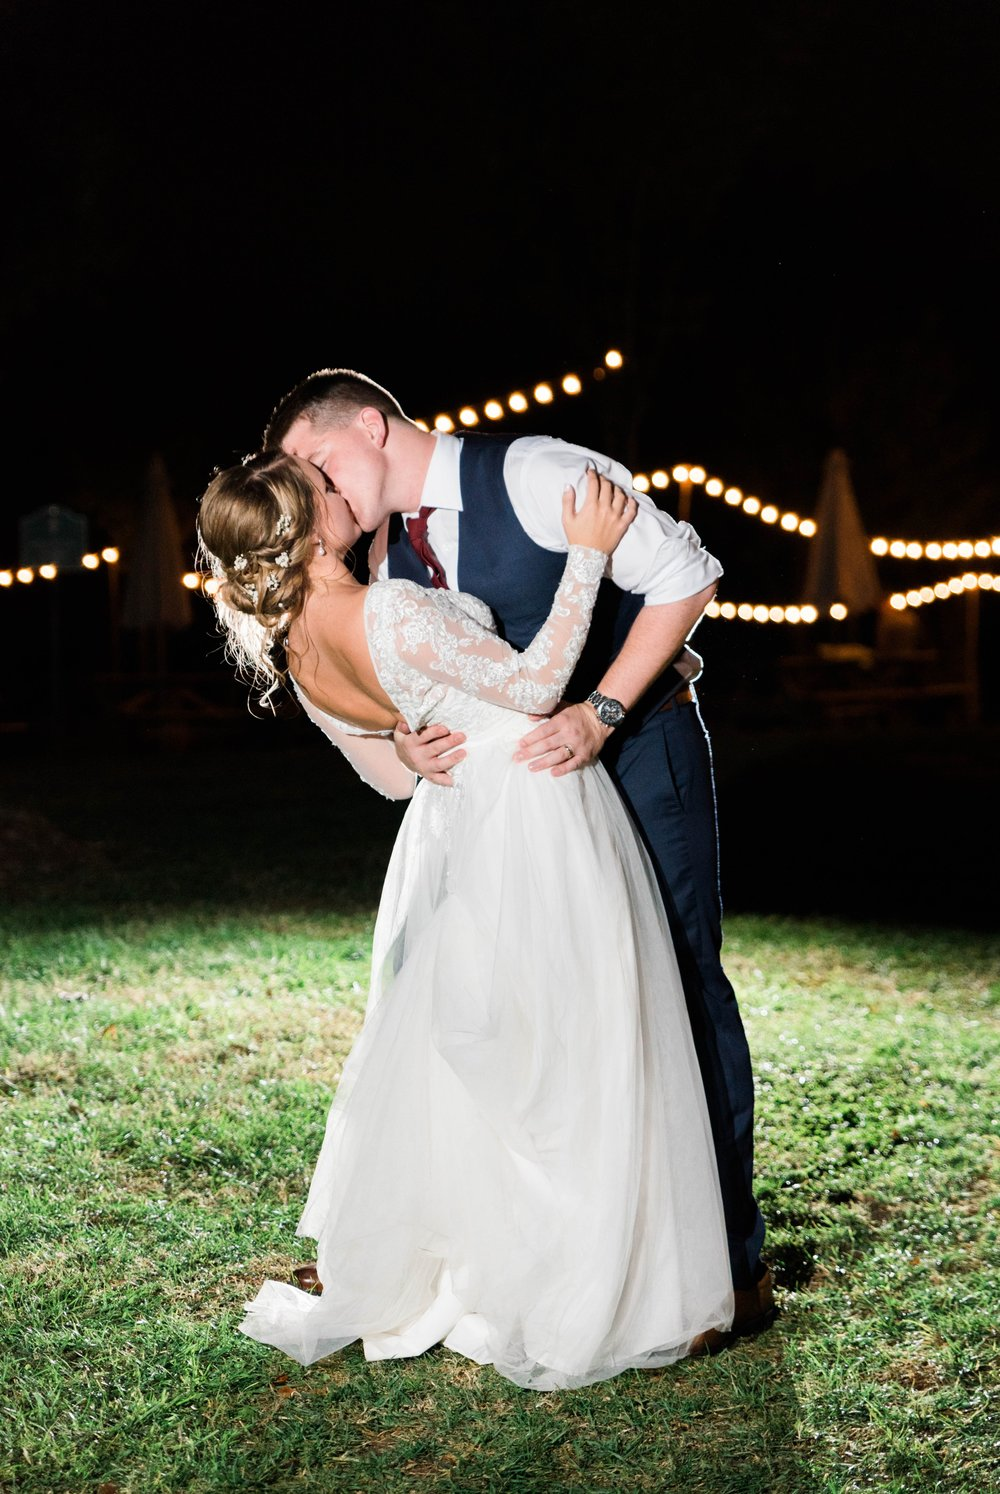 GrantElizabeth_wineryatbullrun_DCwedding_Virginiaweddingphotographer 2.jpg